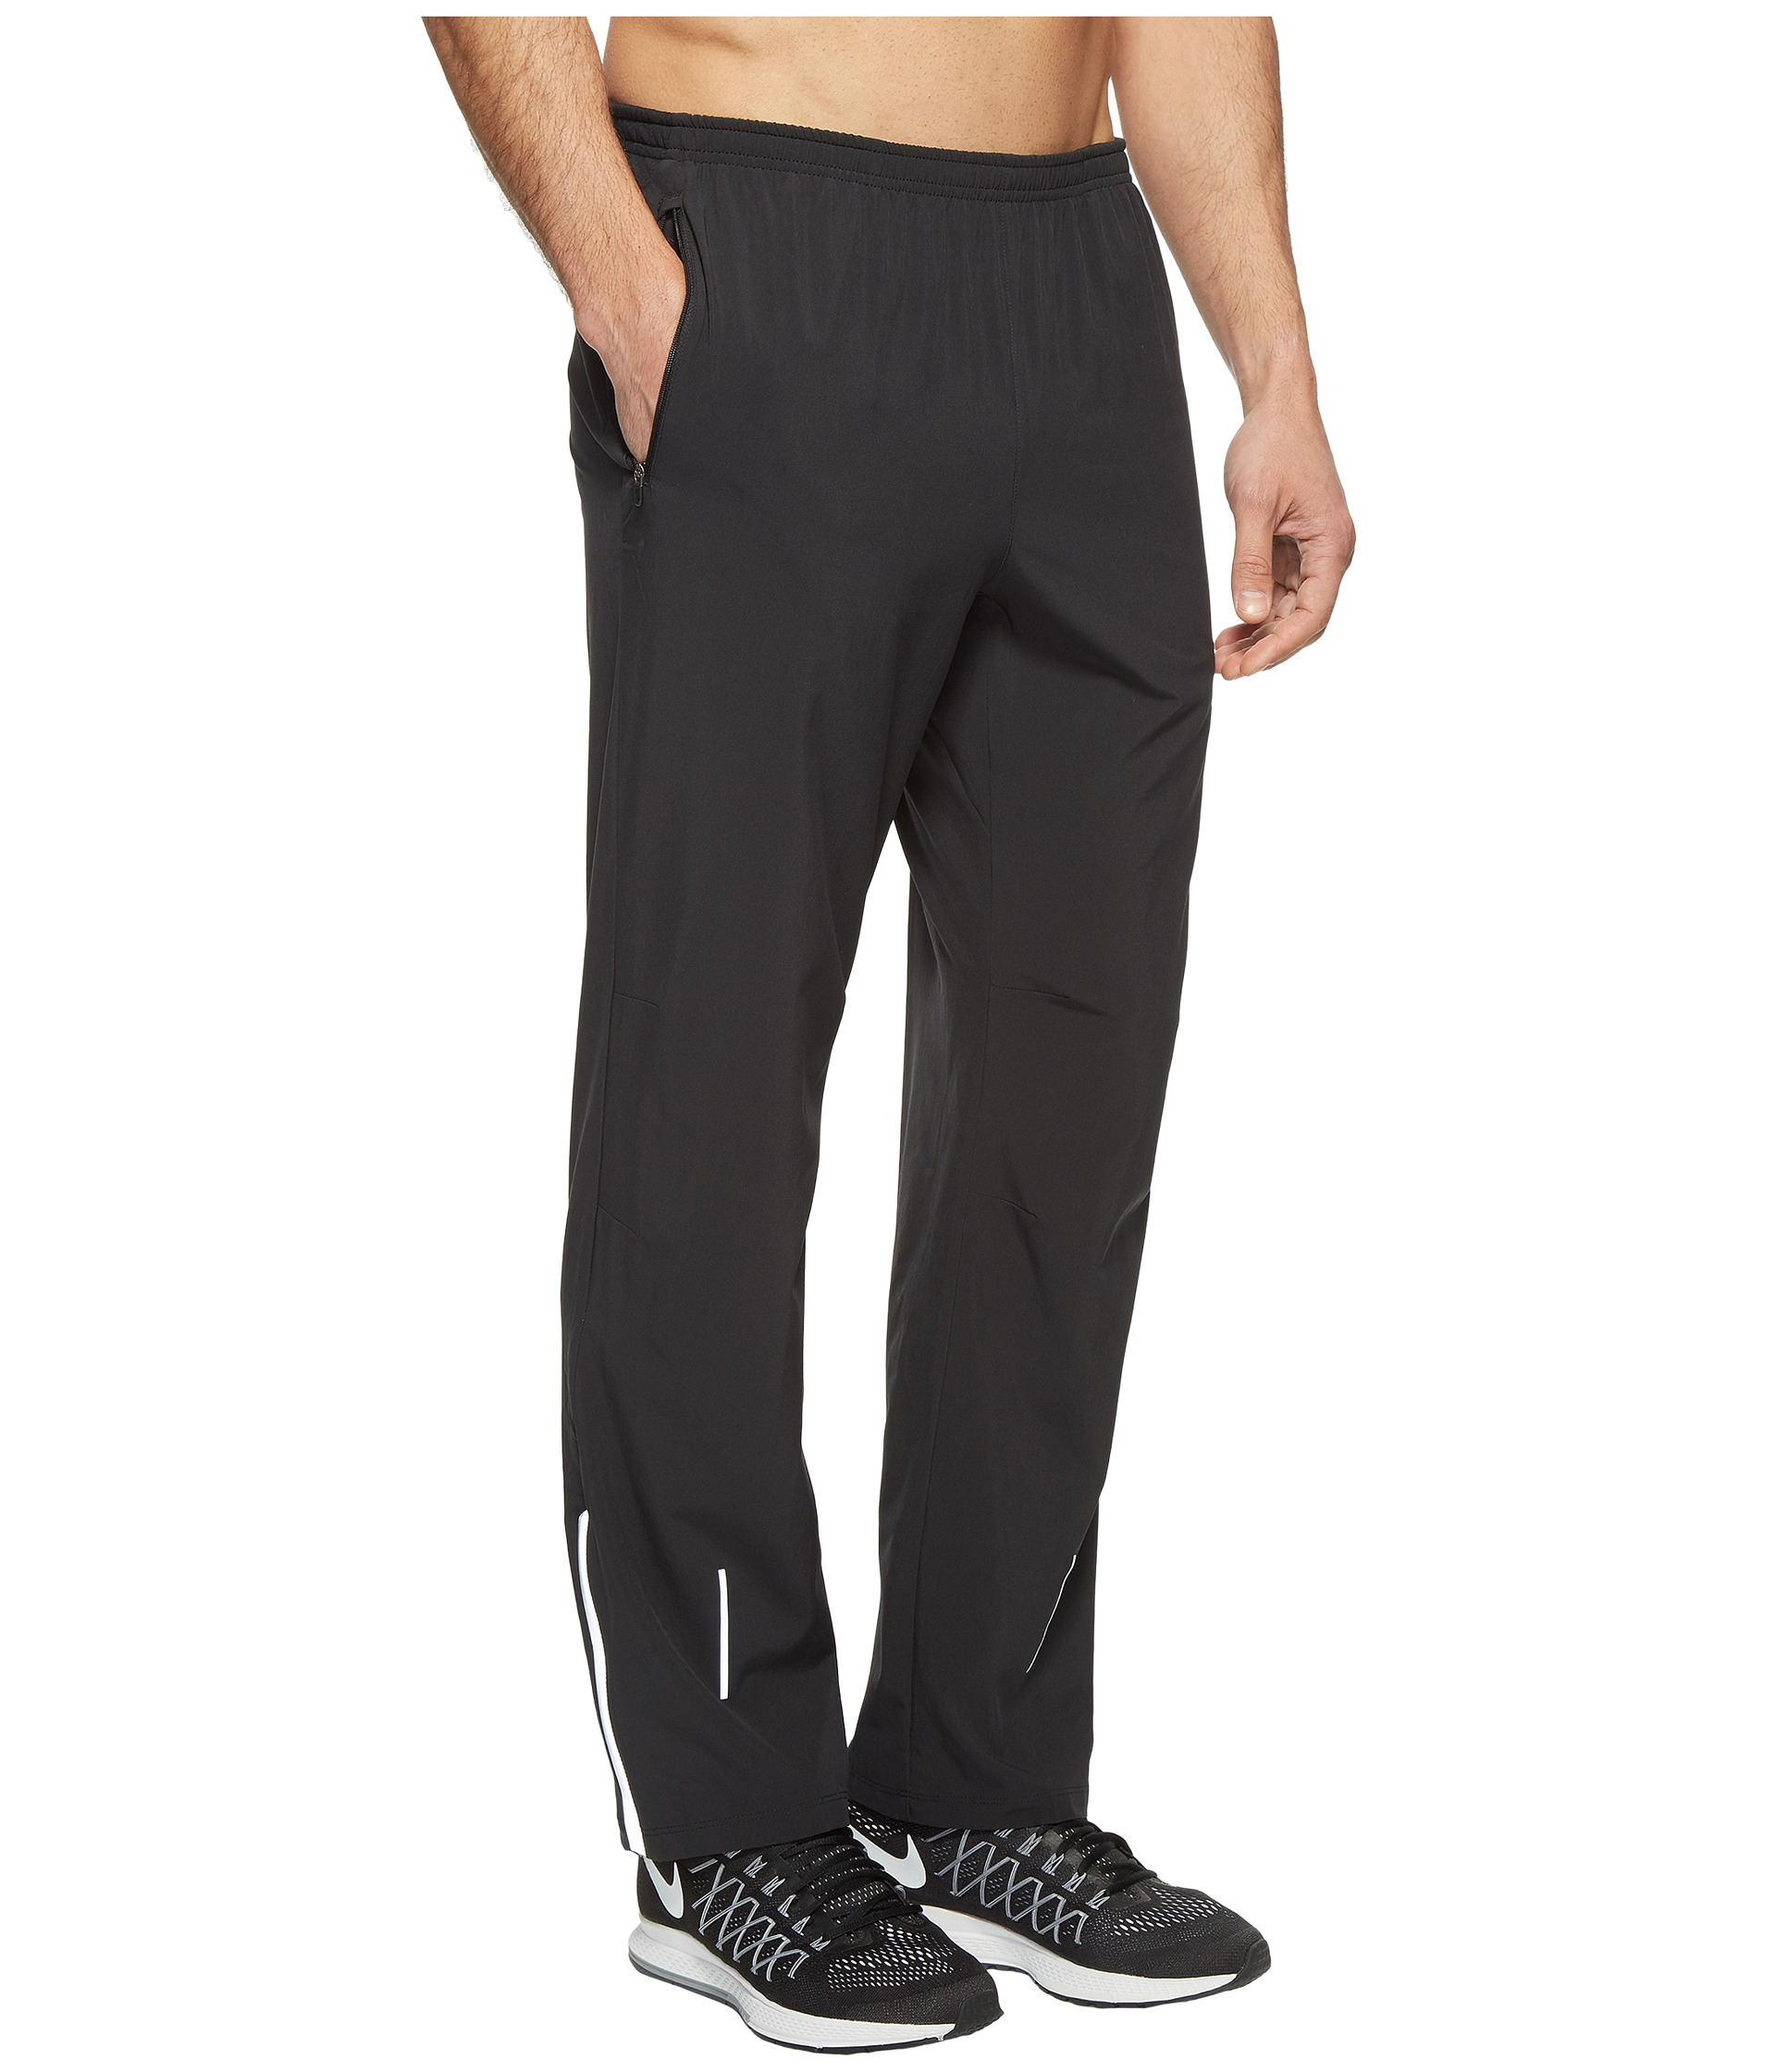 Find great deals on eBay for nike dri fit running pants men. Shop with confidence.